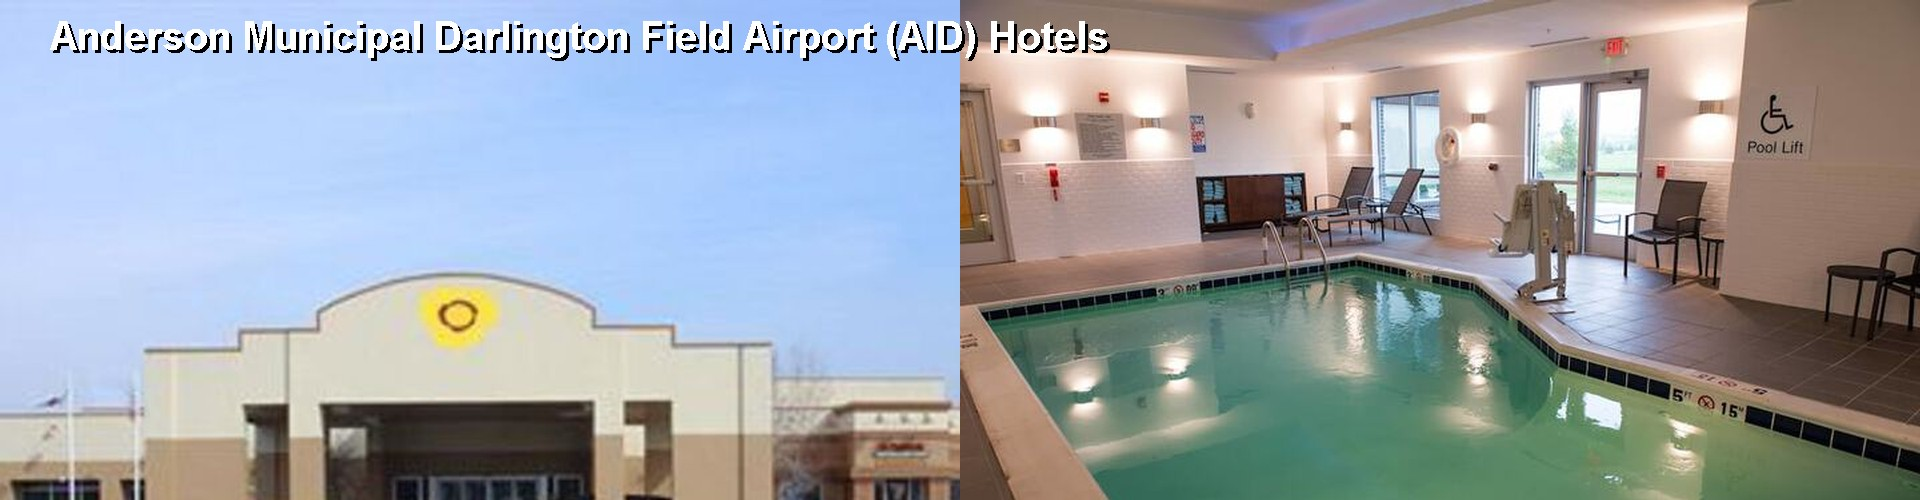 5 Best Hotels near Anderson Municipal Darlington Field Airport (AID)